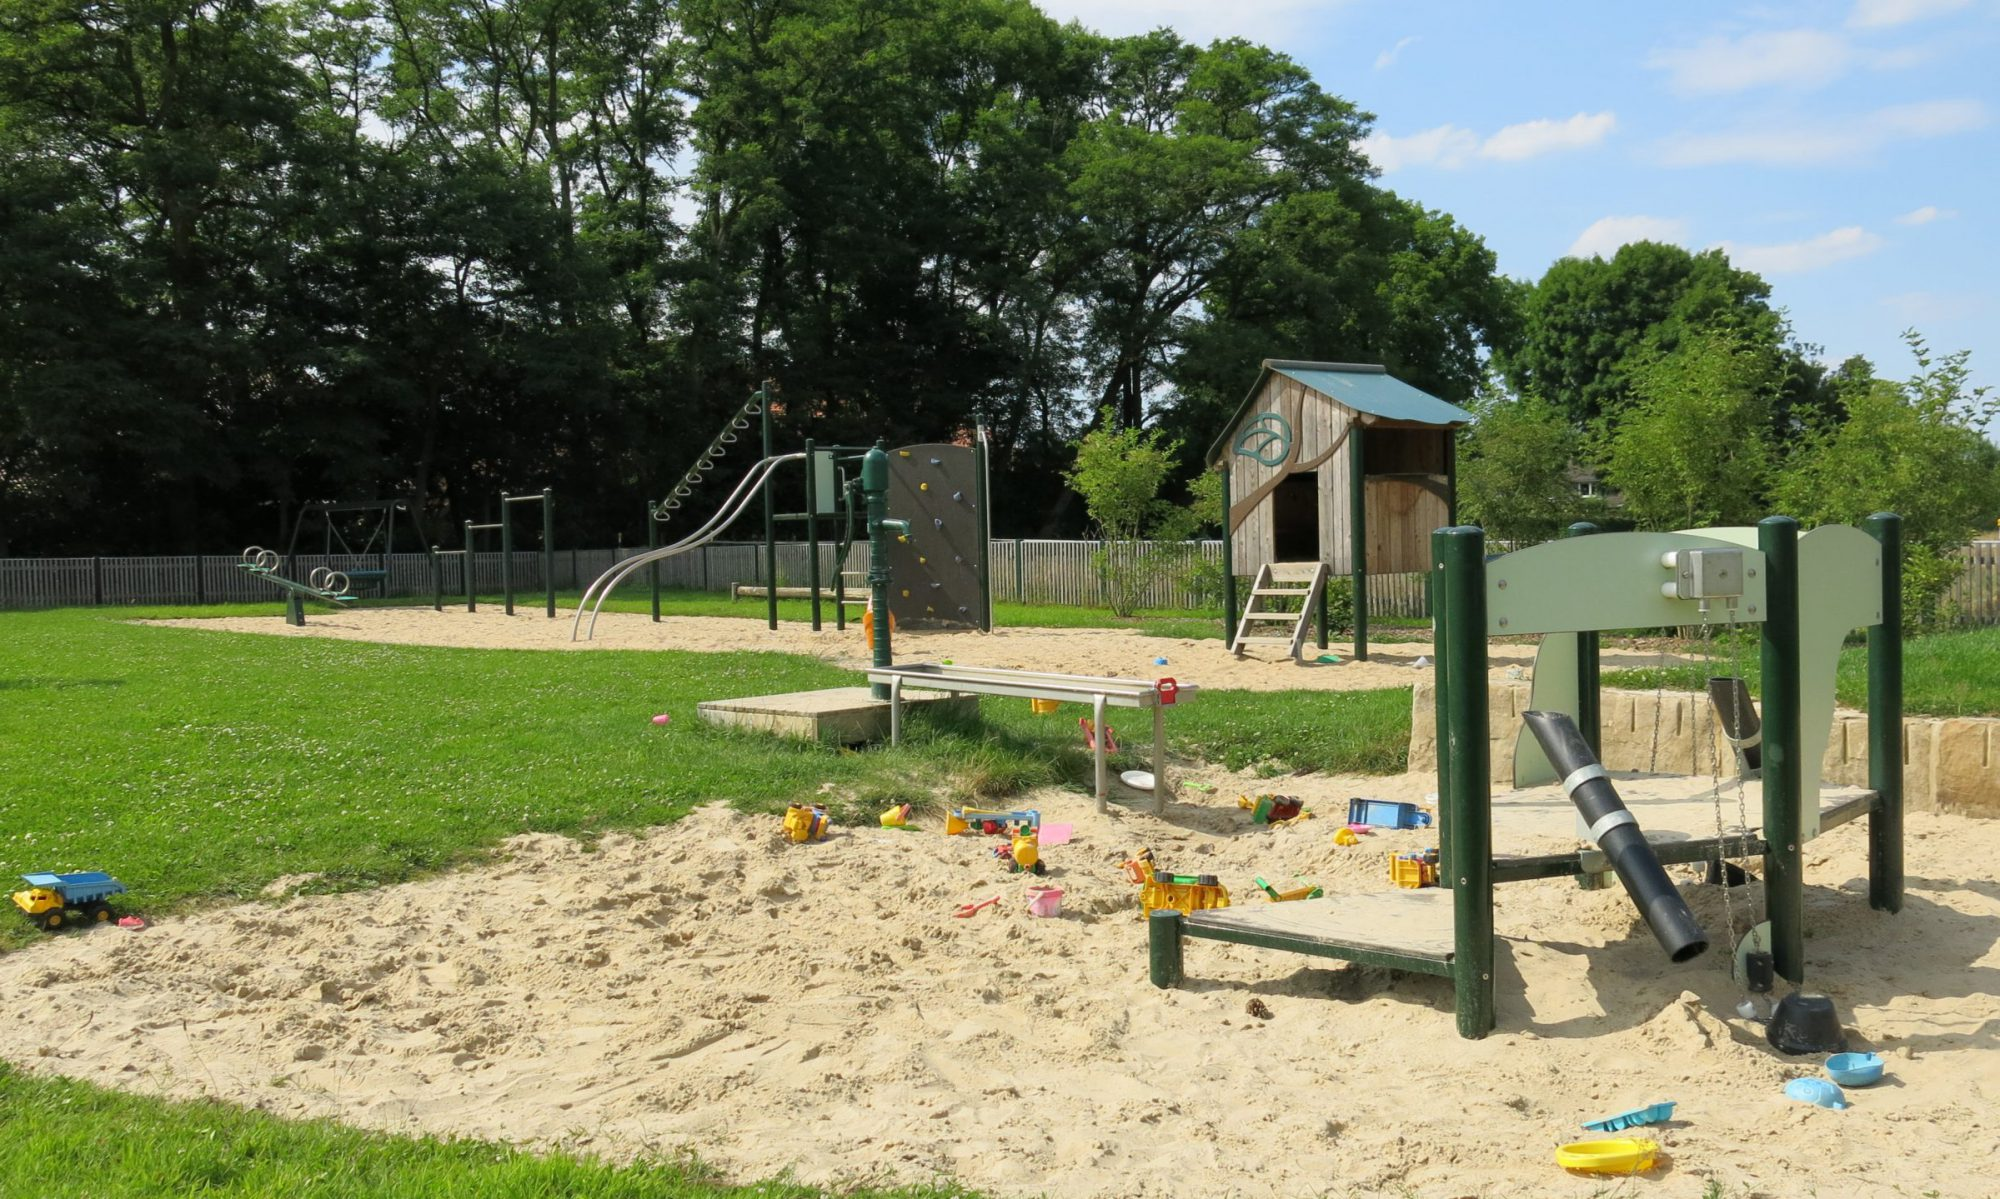 SpIDu - Spielplatz Initiative Dudensen